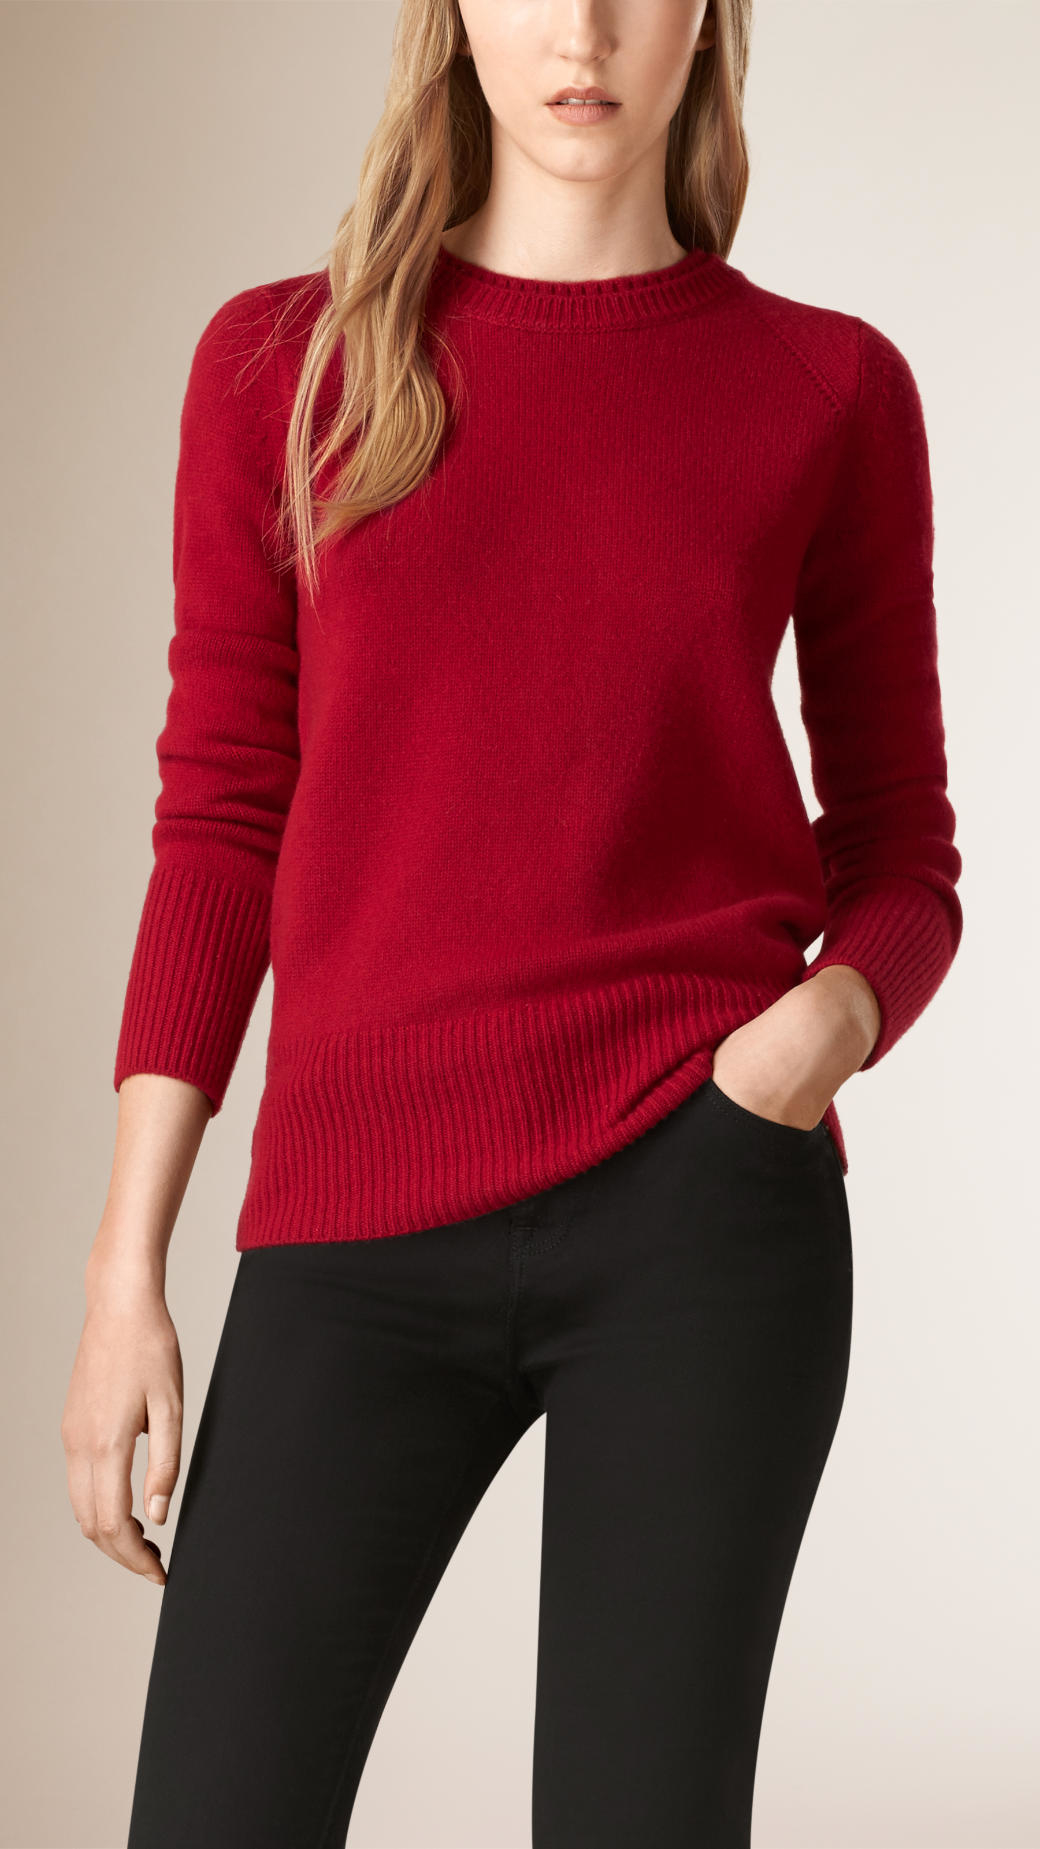 Burberry Crew Neck Cashmere Sweater Parade Red in Red | Lyst